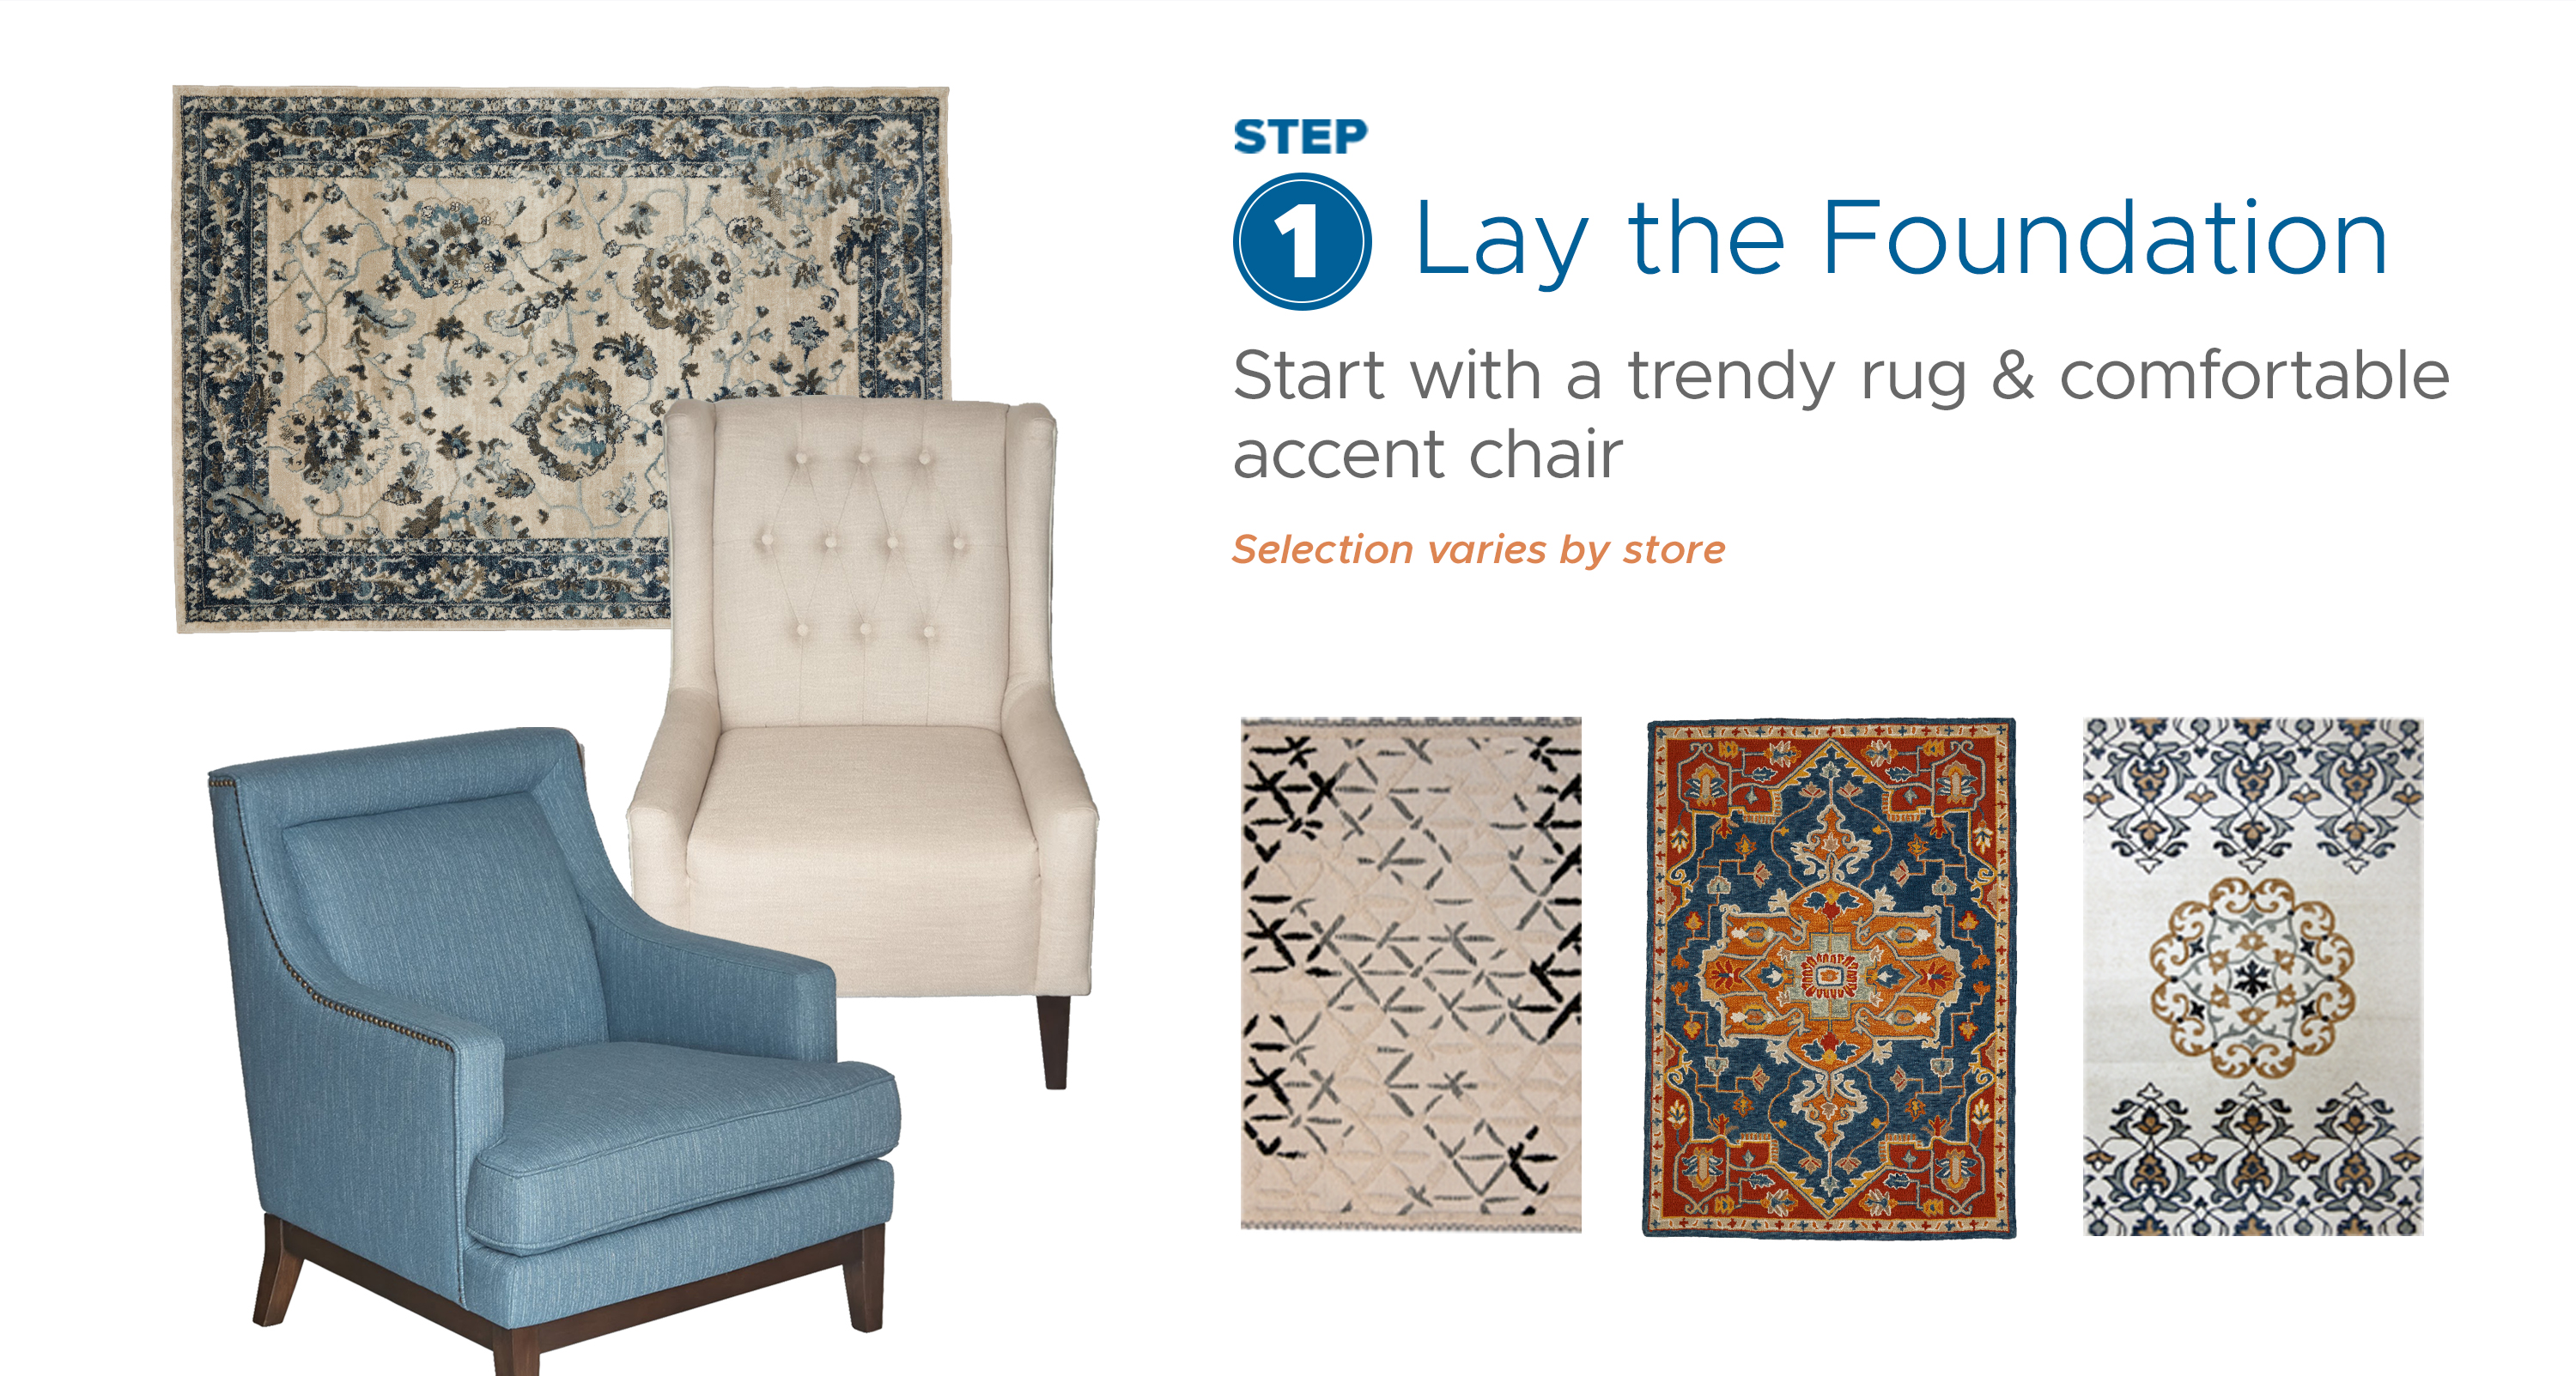 Step 1: Lay the Foundation - Start with a trendy rug & comfortable accent chair